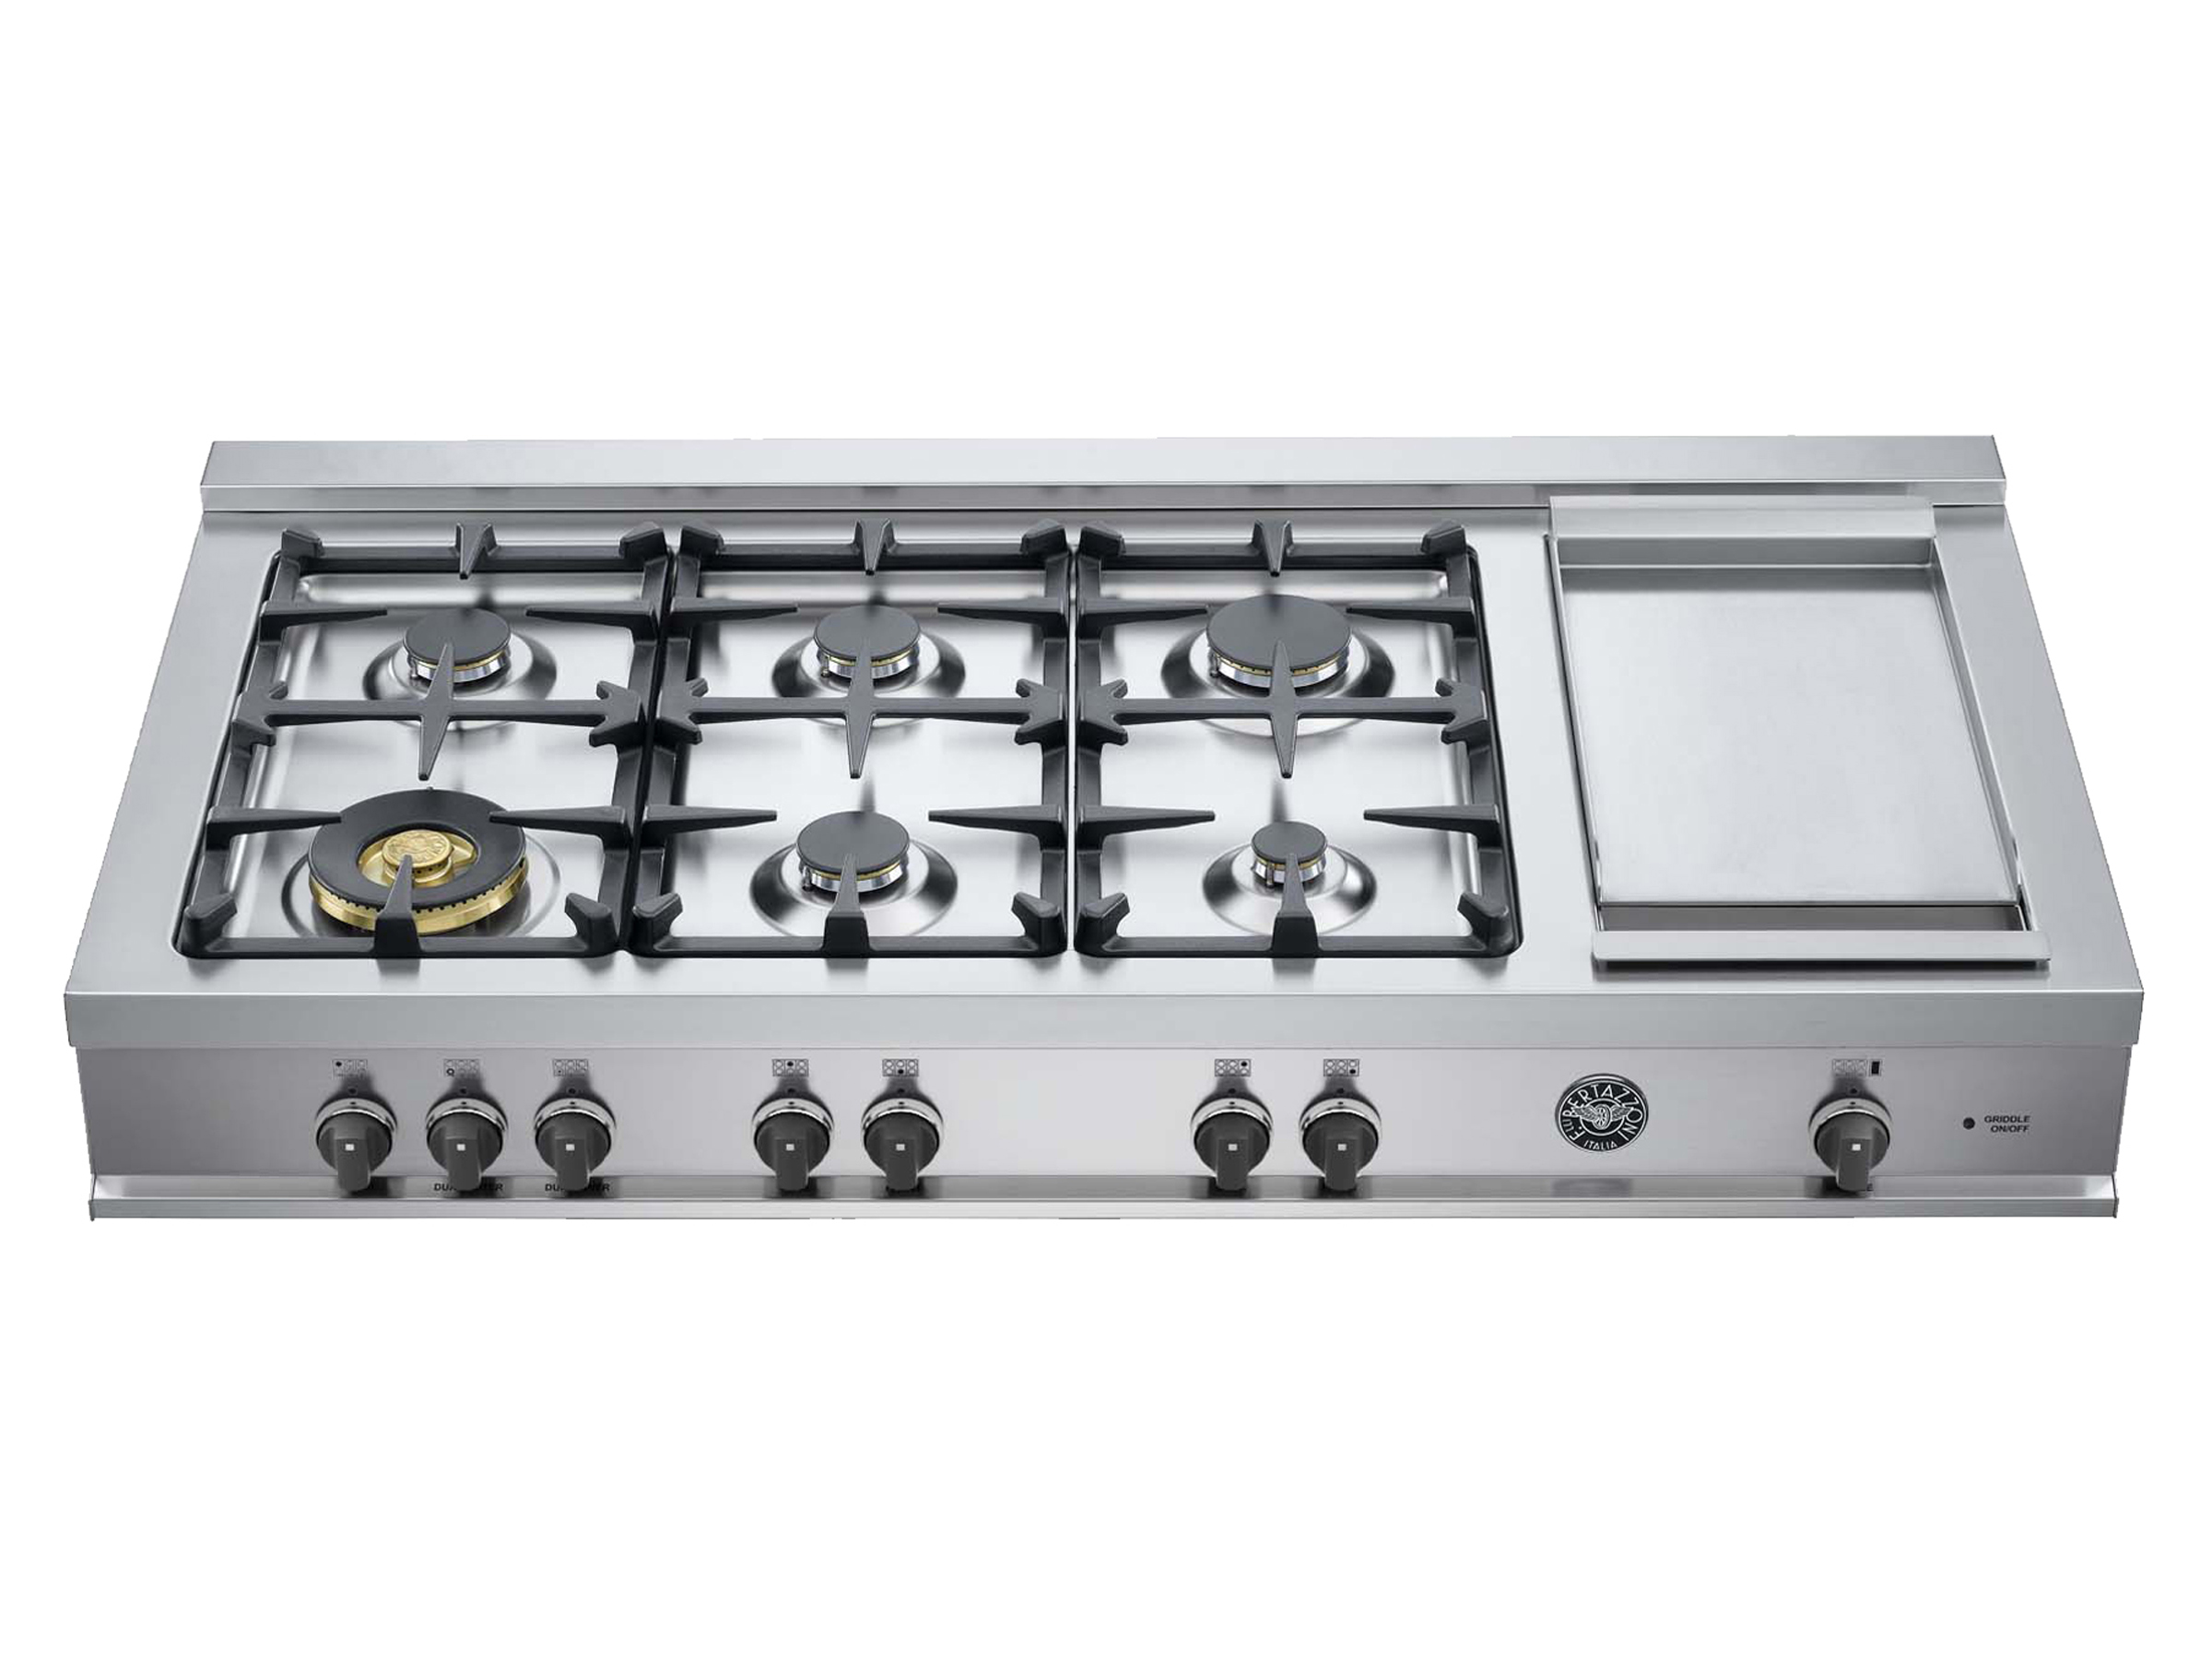 48 Rangetop 6 Burners and Griddle | Bertazzoni - Stainless